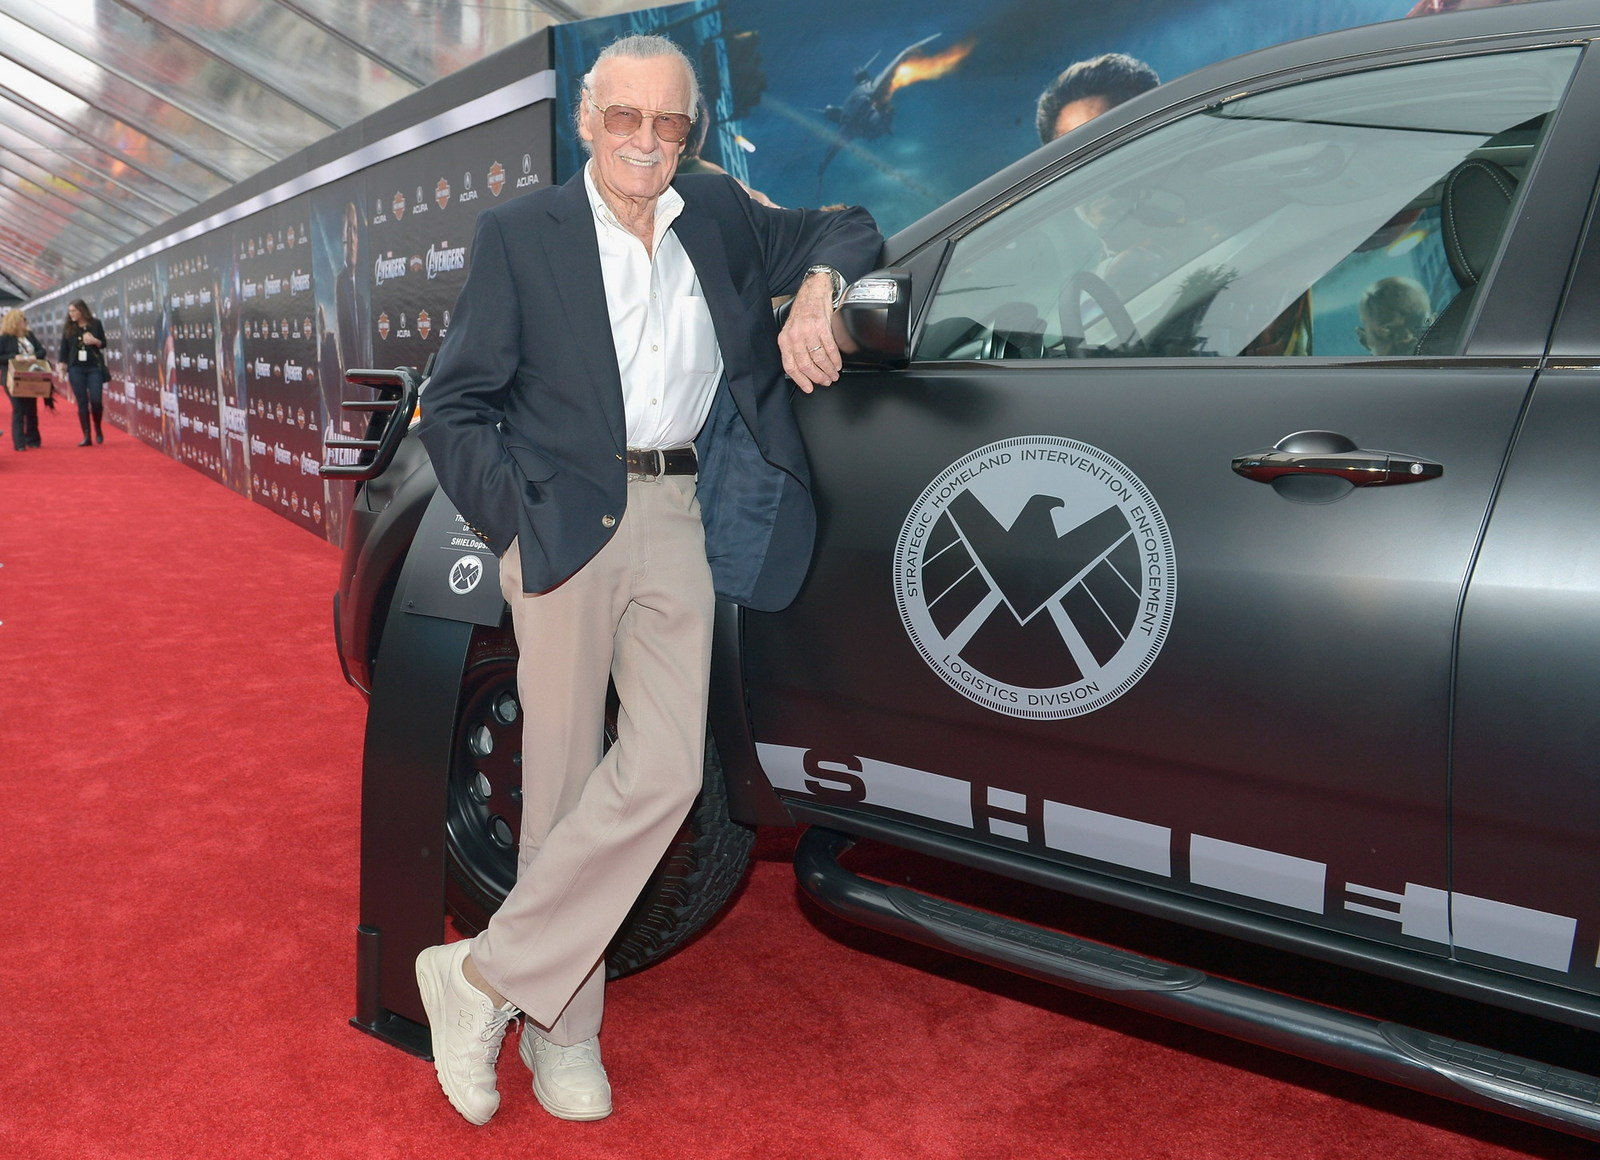 Video Robert Downey Jr Attends Avengers Premiere In An Acura Nsx Roadster Pictures Photos